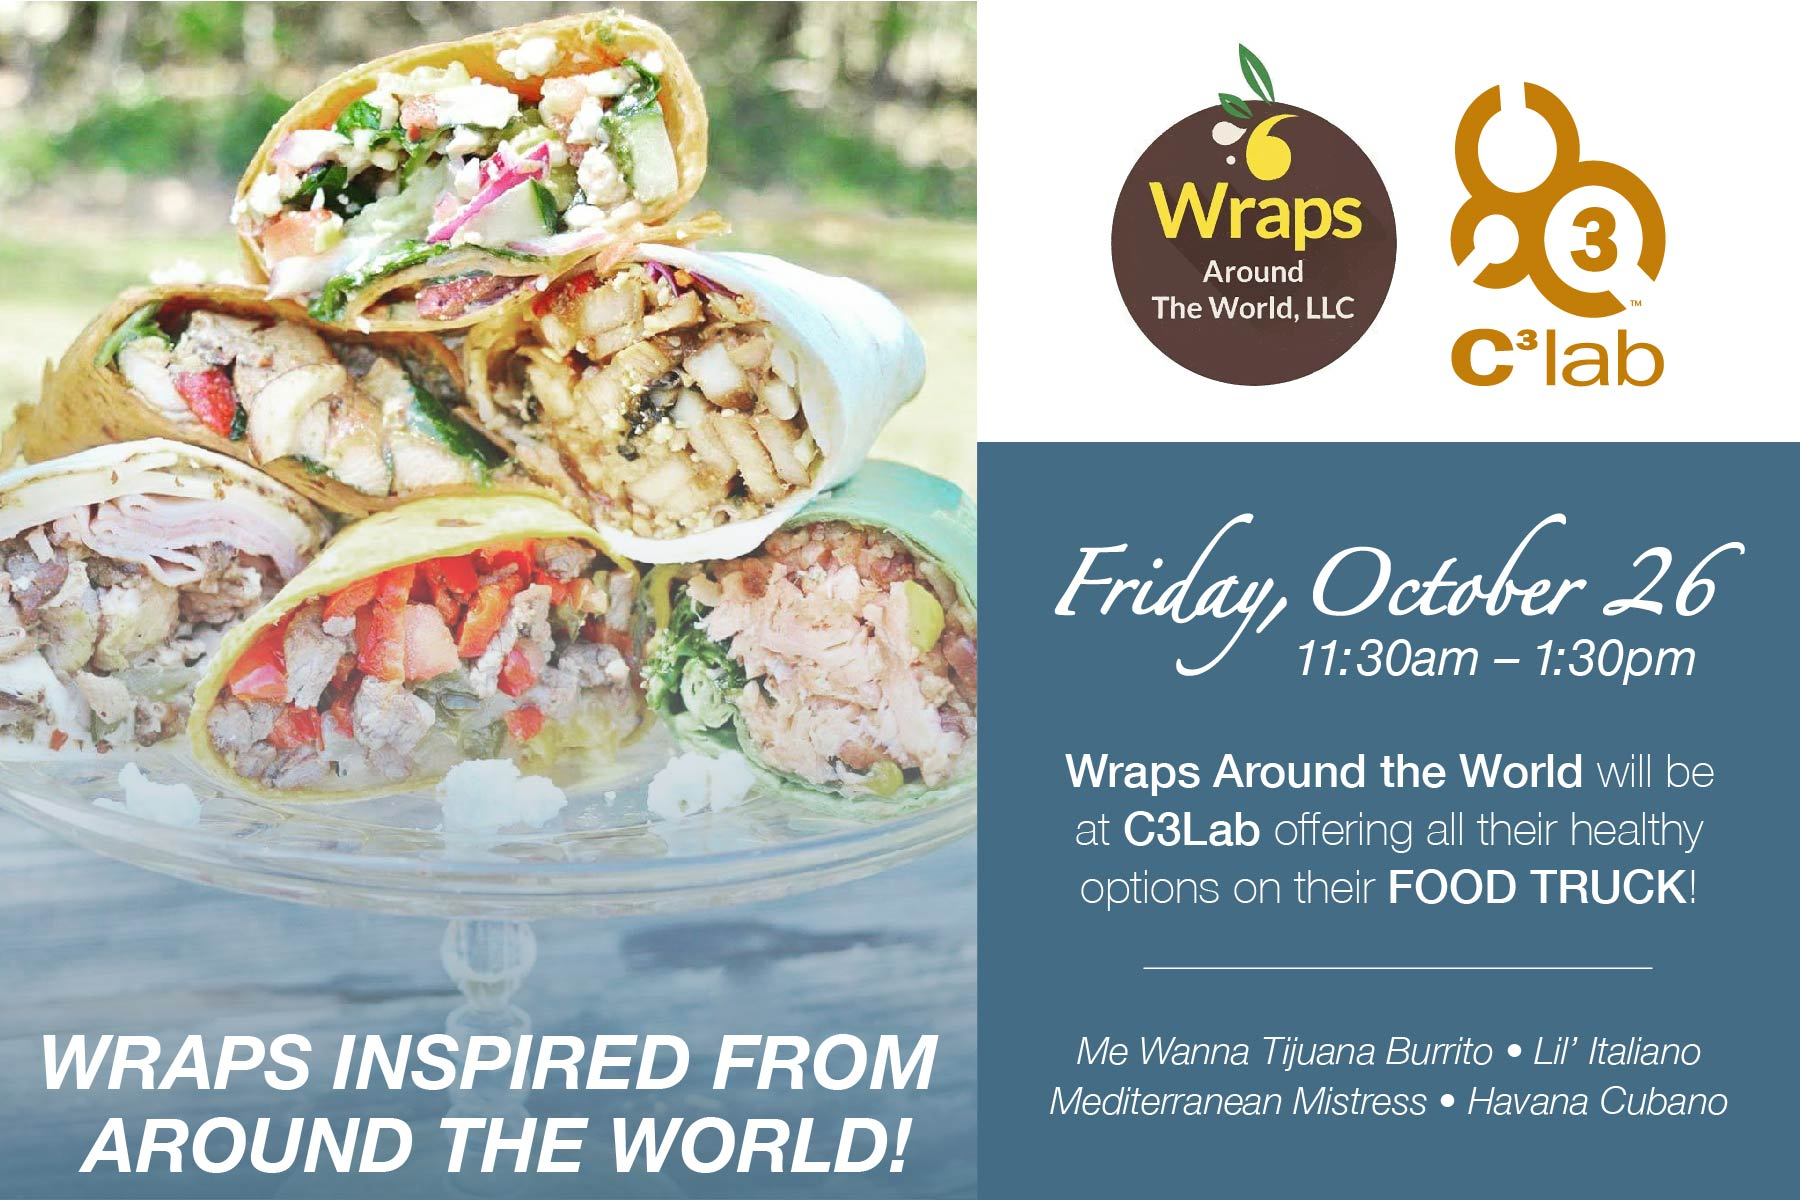 WrapsAroundTheWorld-01.jpg